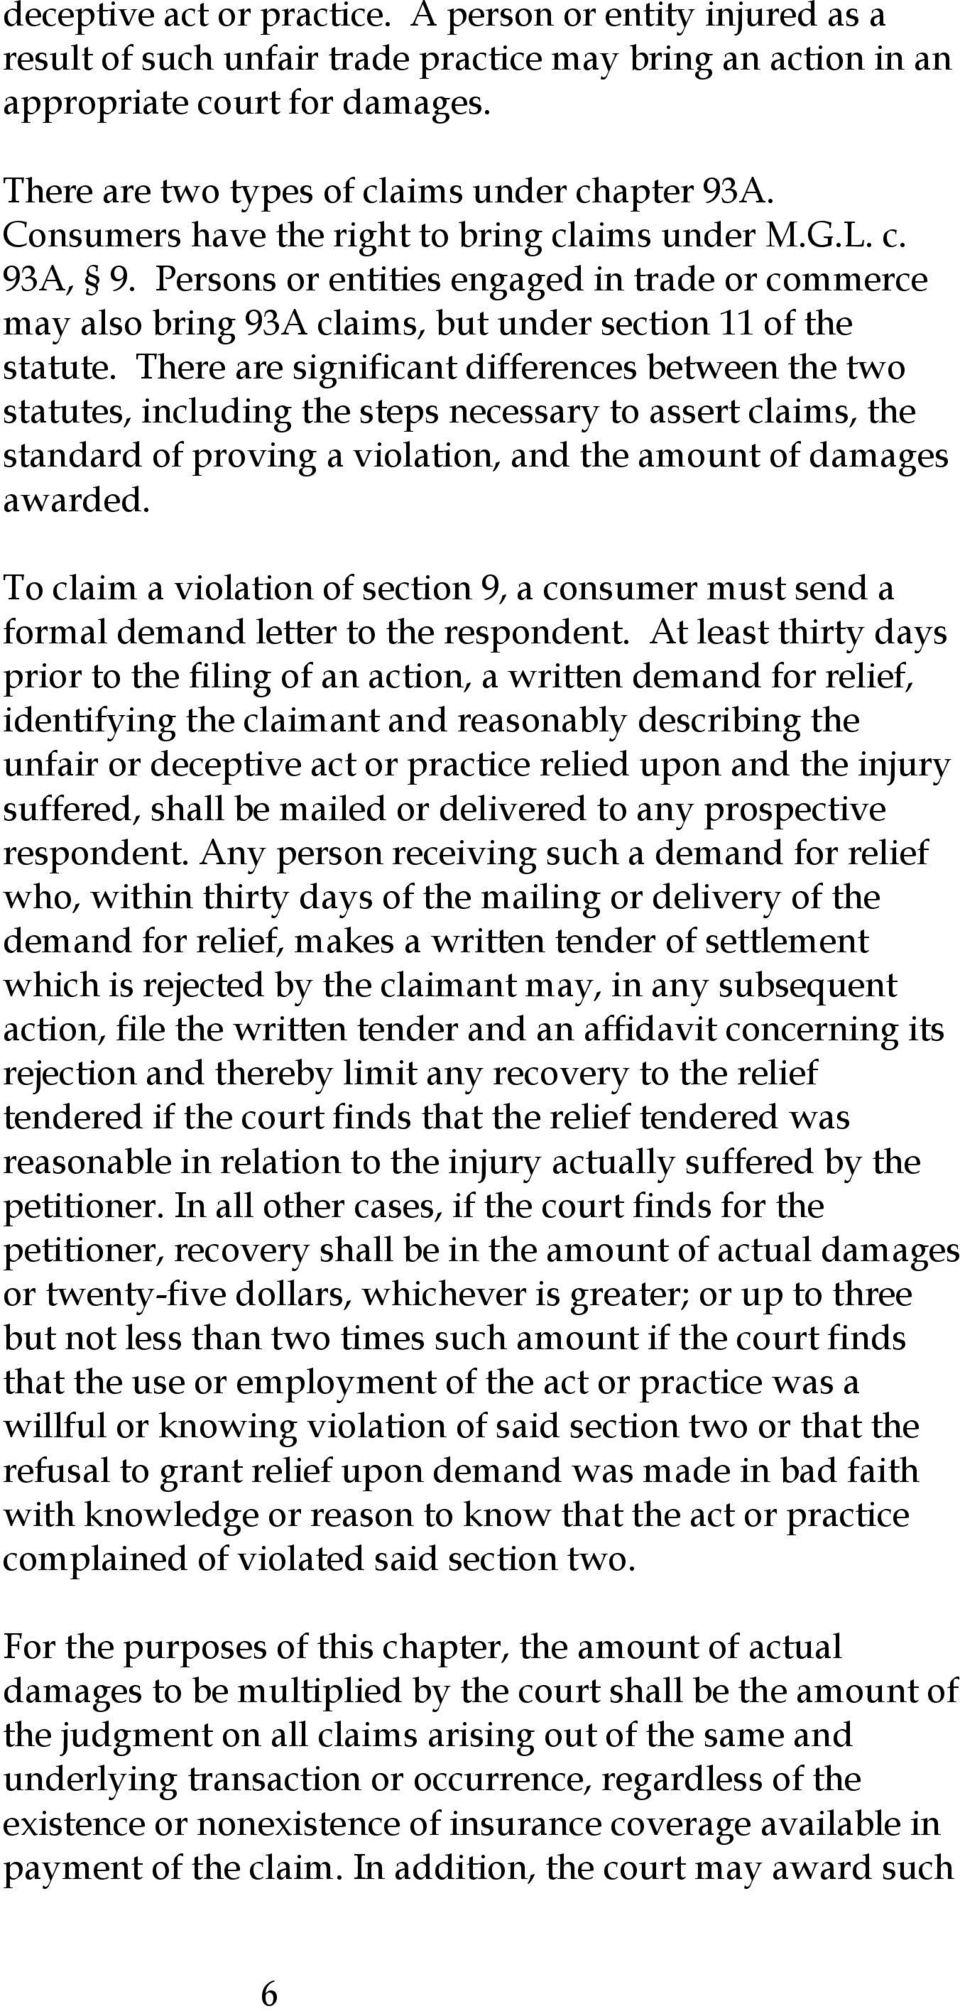 Persons or entities engaged in trade or commerce may also bring 93A claims, but under section 11 of the statute.